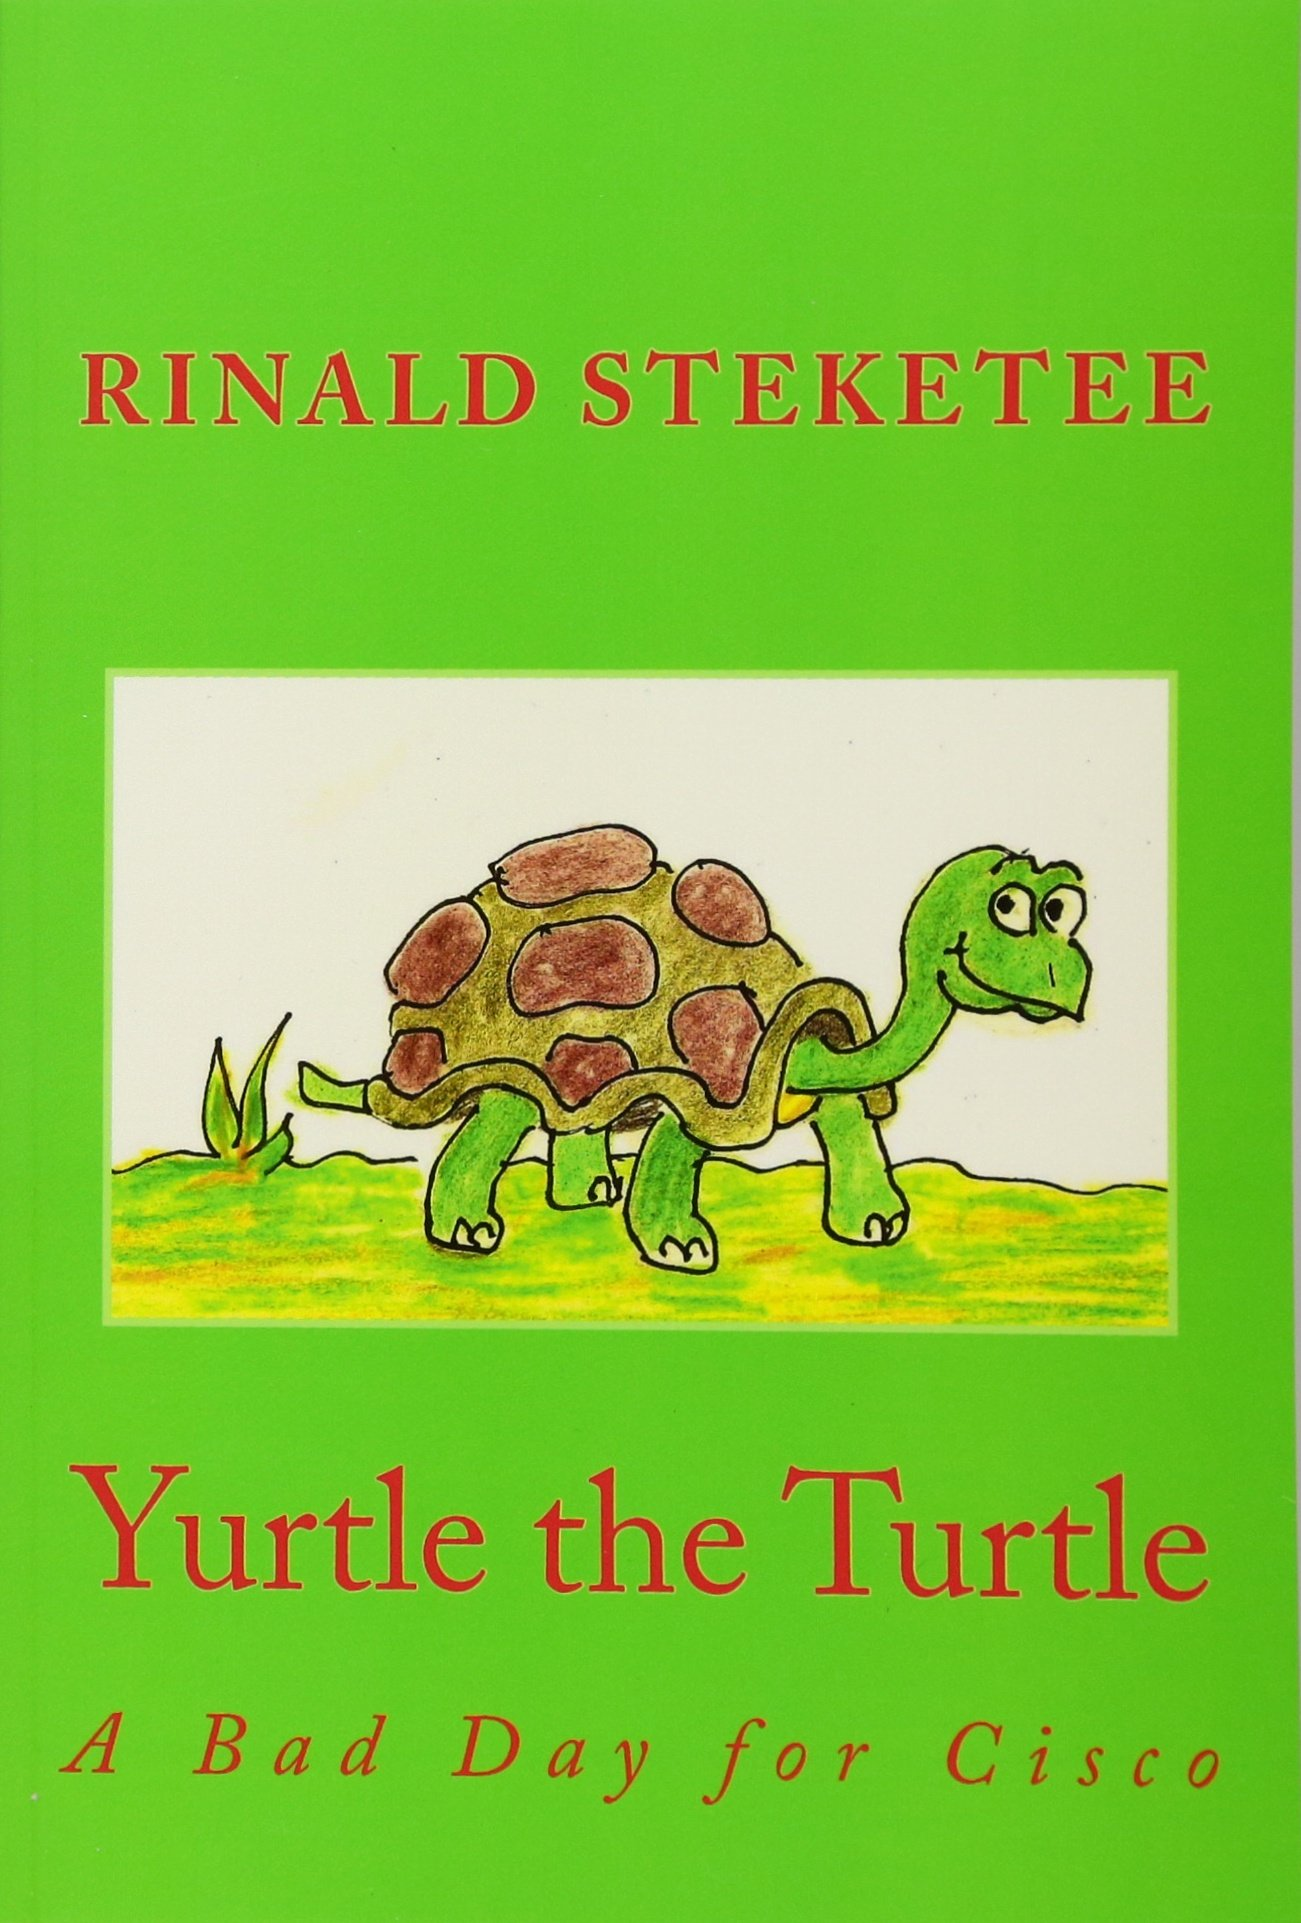 Yurtle the Turtle: A Bad Day for Cisco